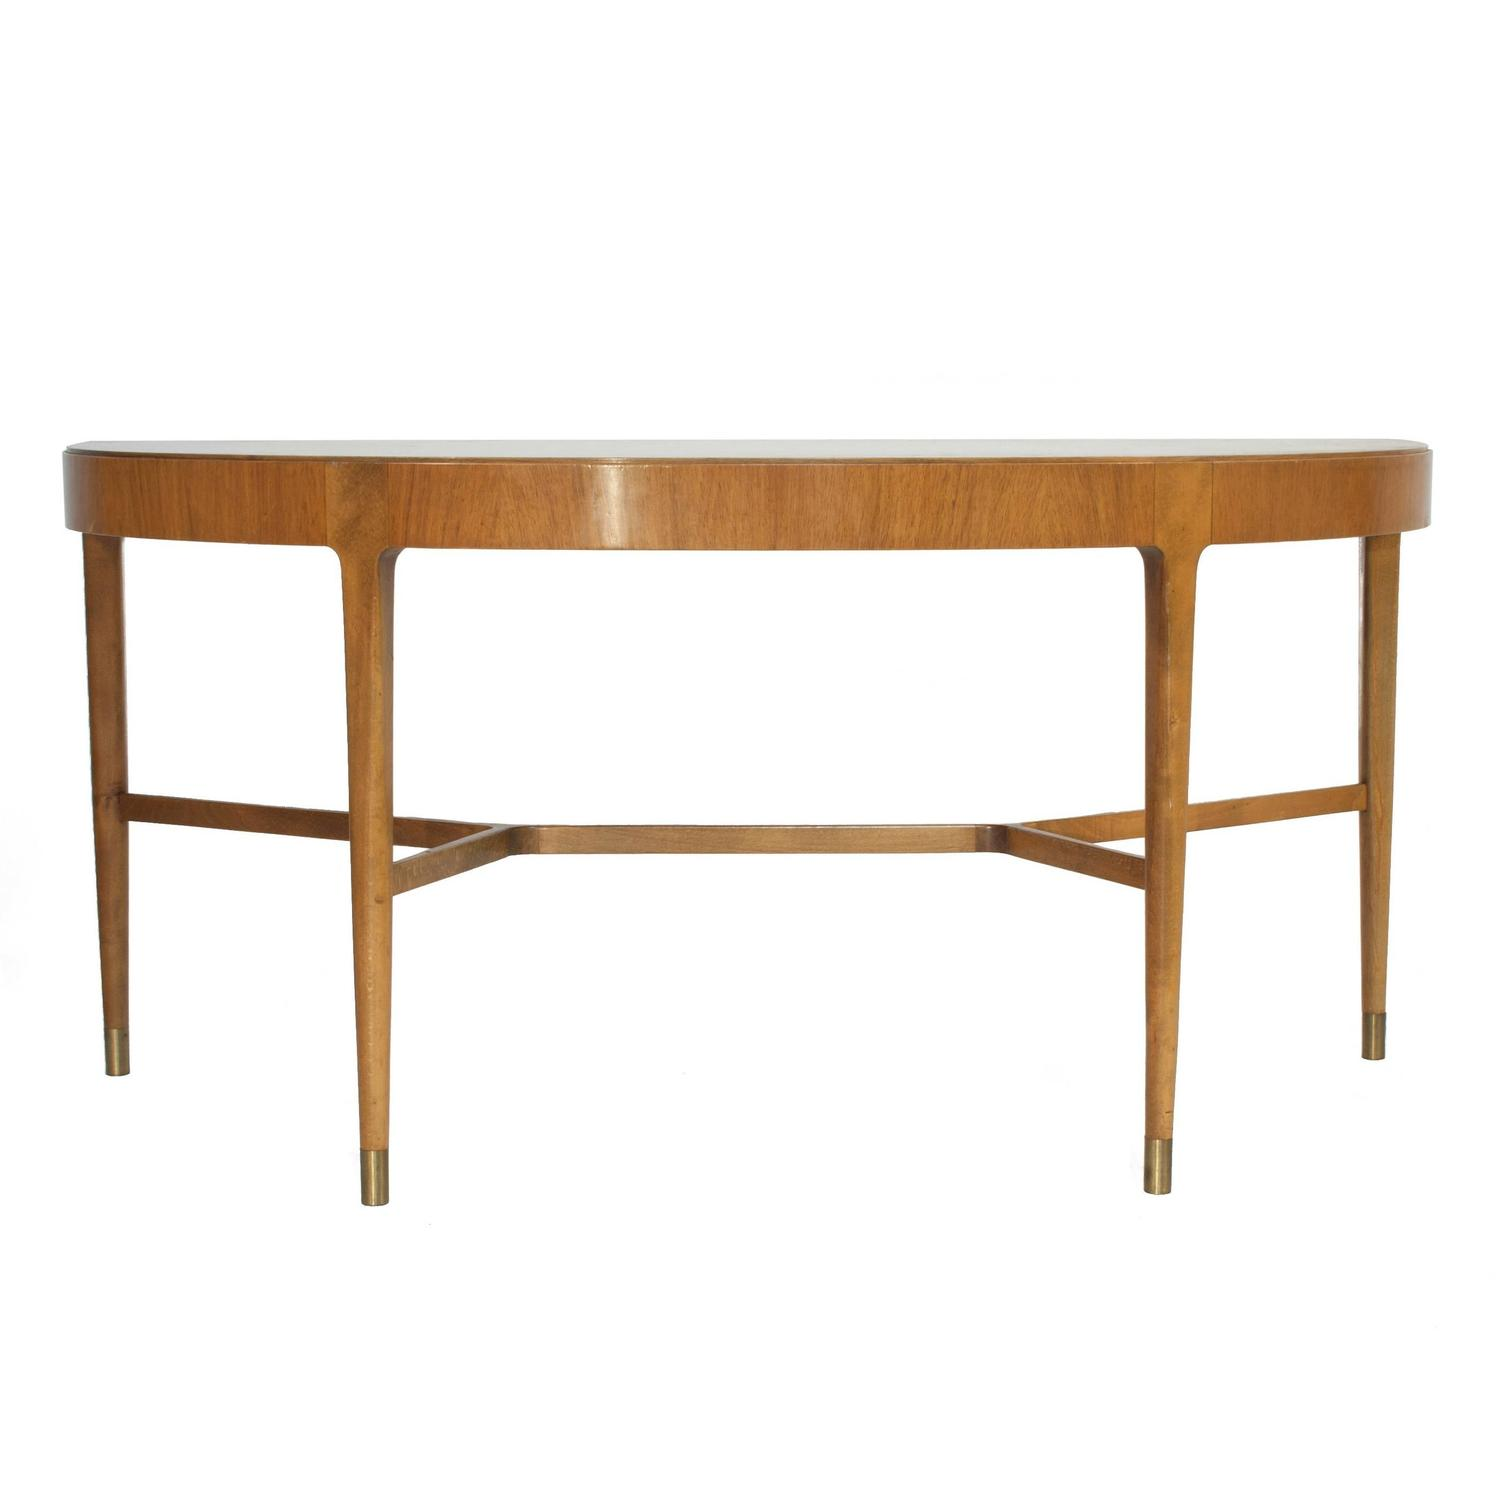 Demilune table at 1stdibs for Baignoire demi lune